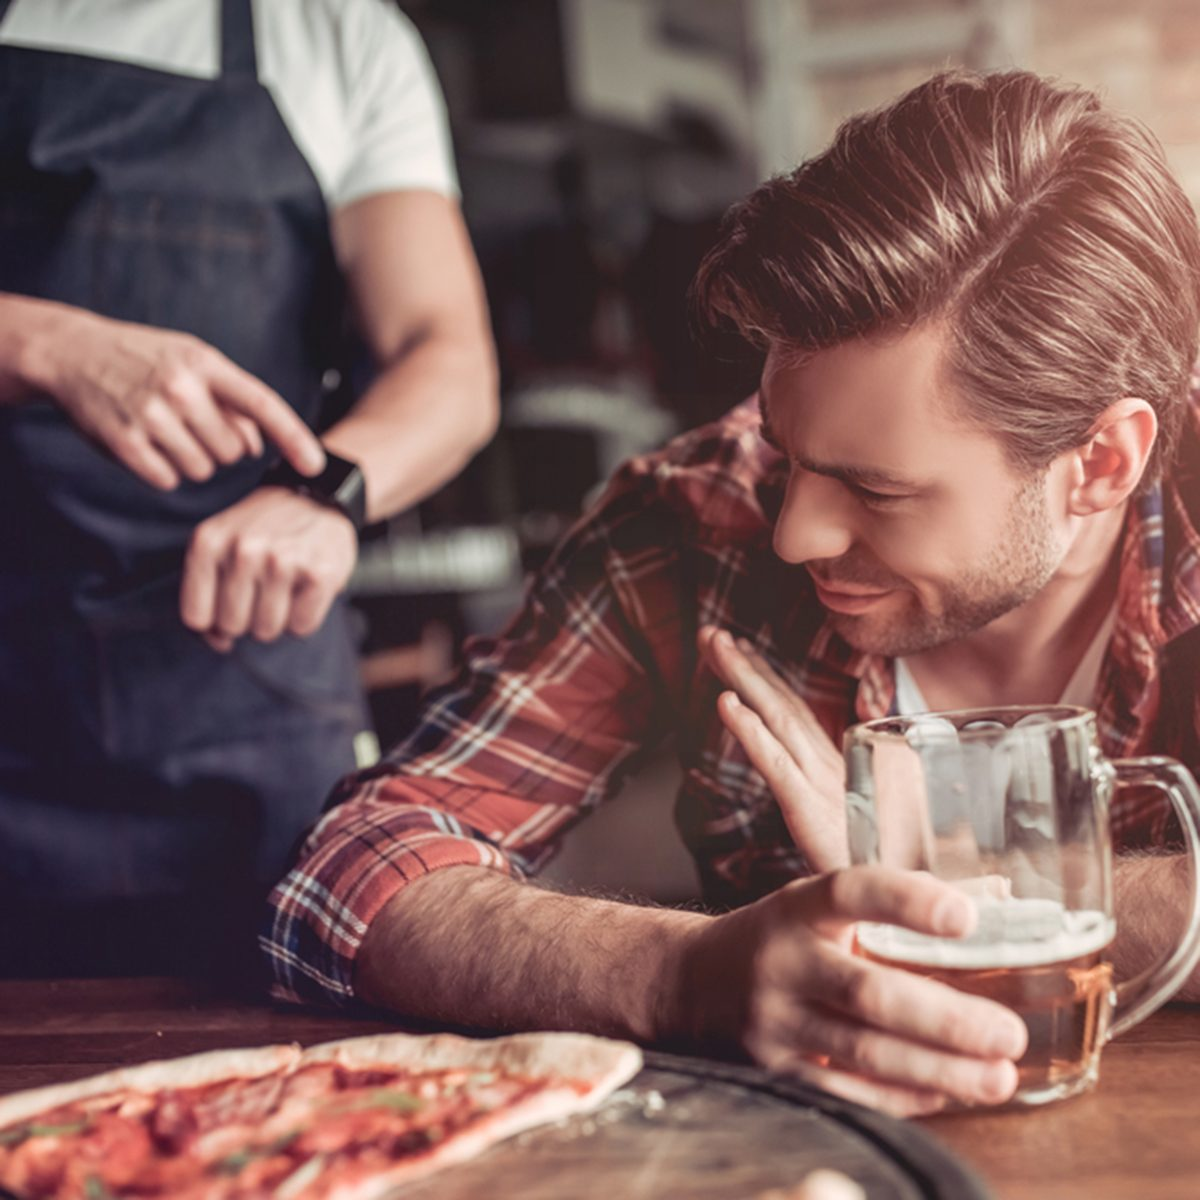 We are closed! Waiter is trying to get awake drunk visitor in bar.; Shutterstock ID 658915978; Job (TFH, TOH, RD, BNB, CWM, CM): TOH